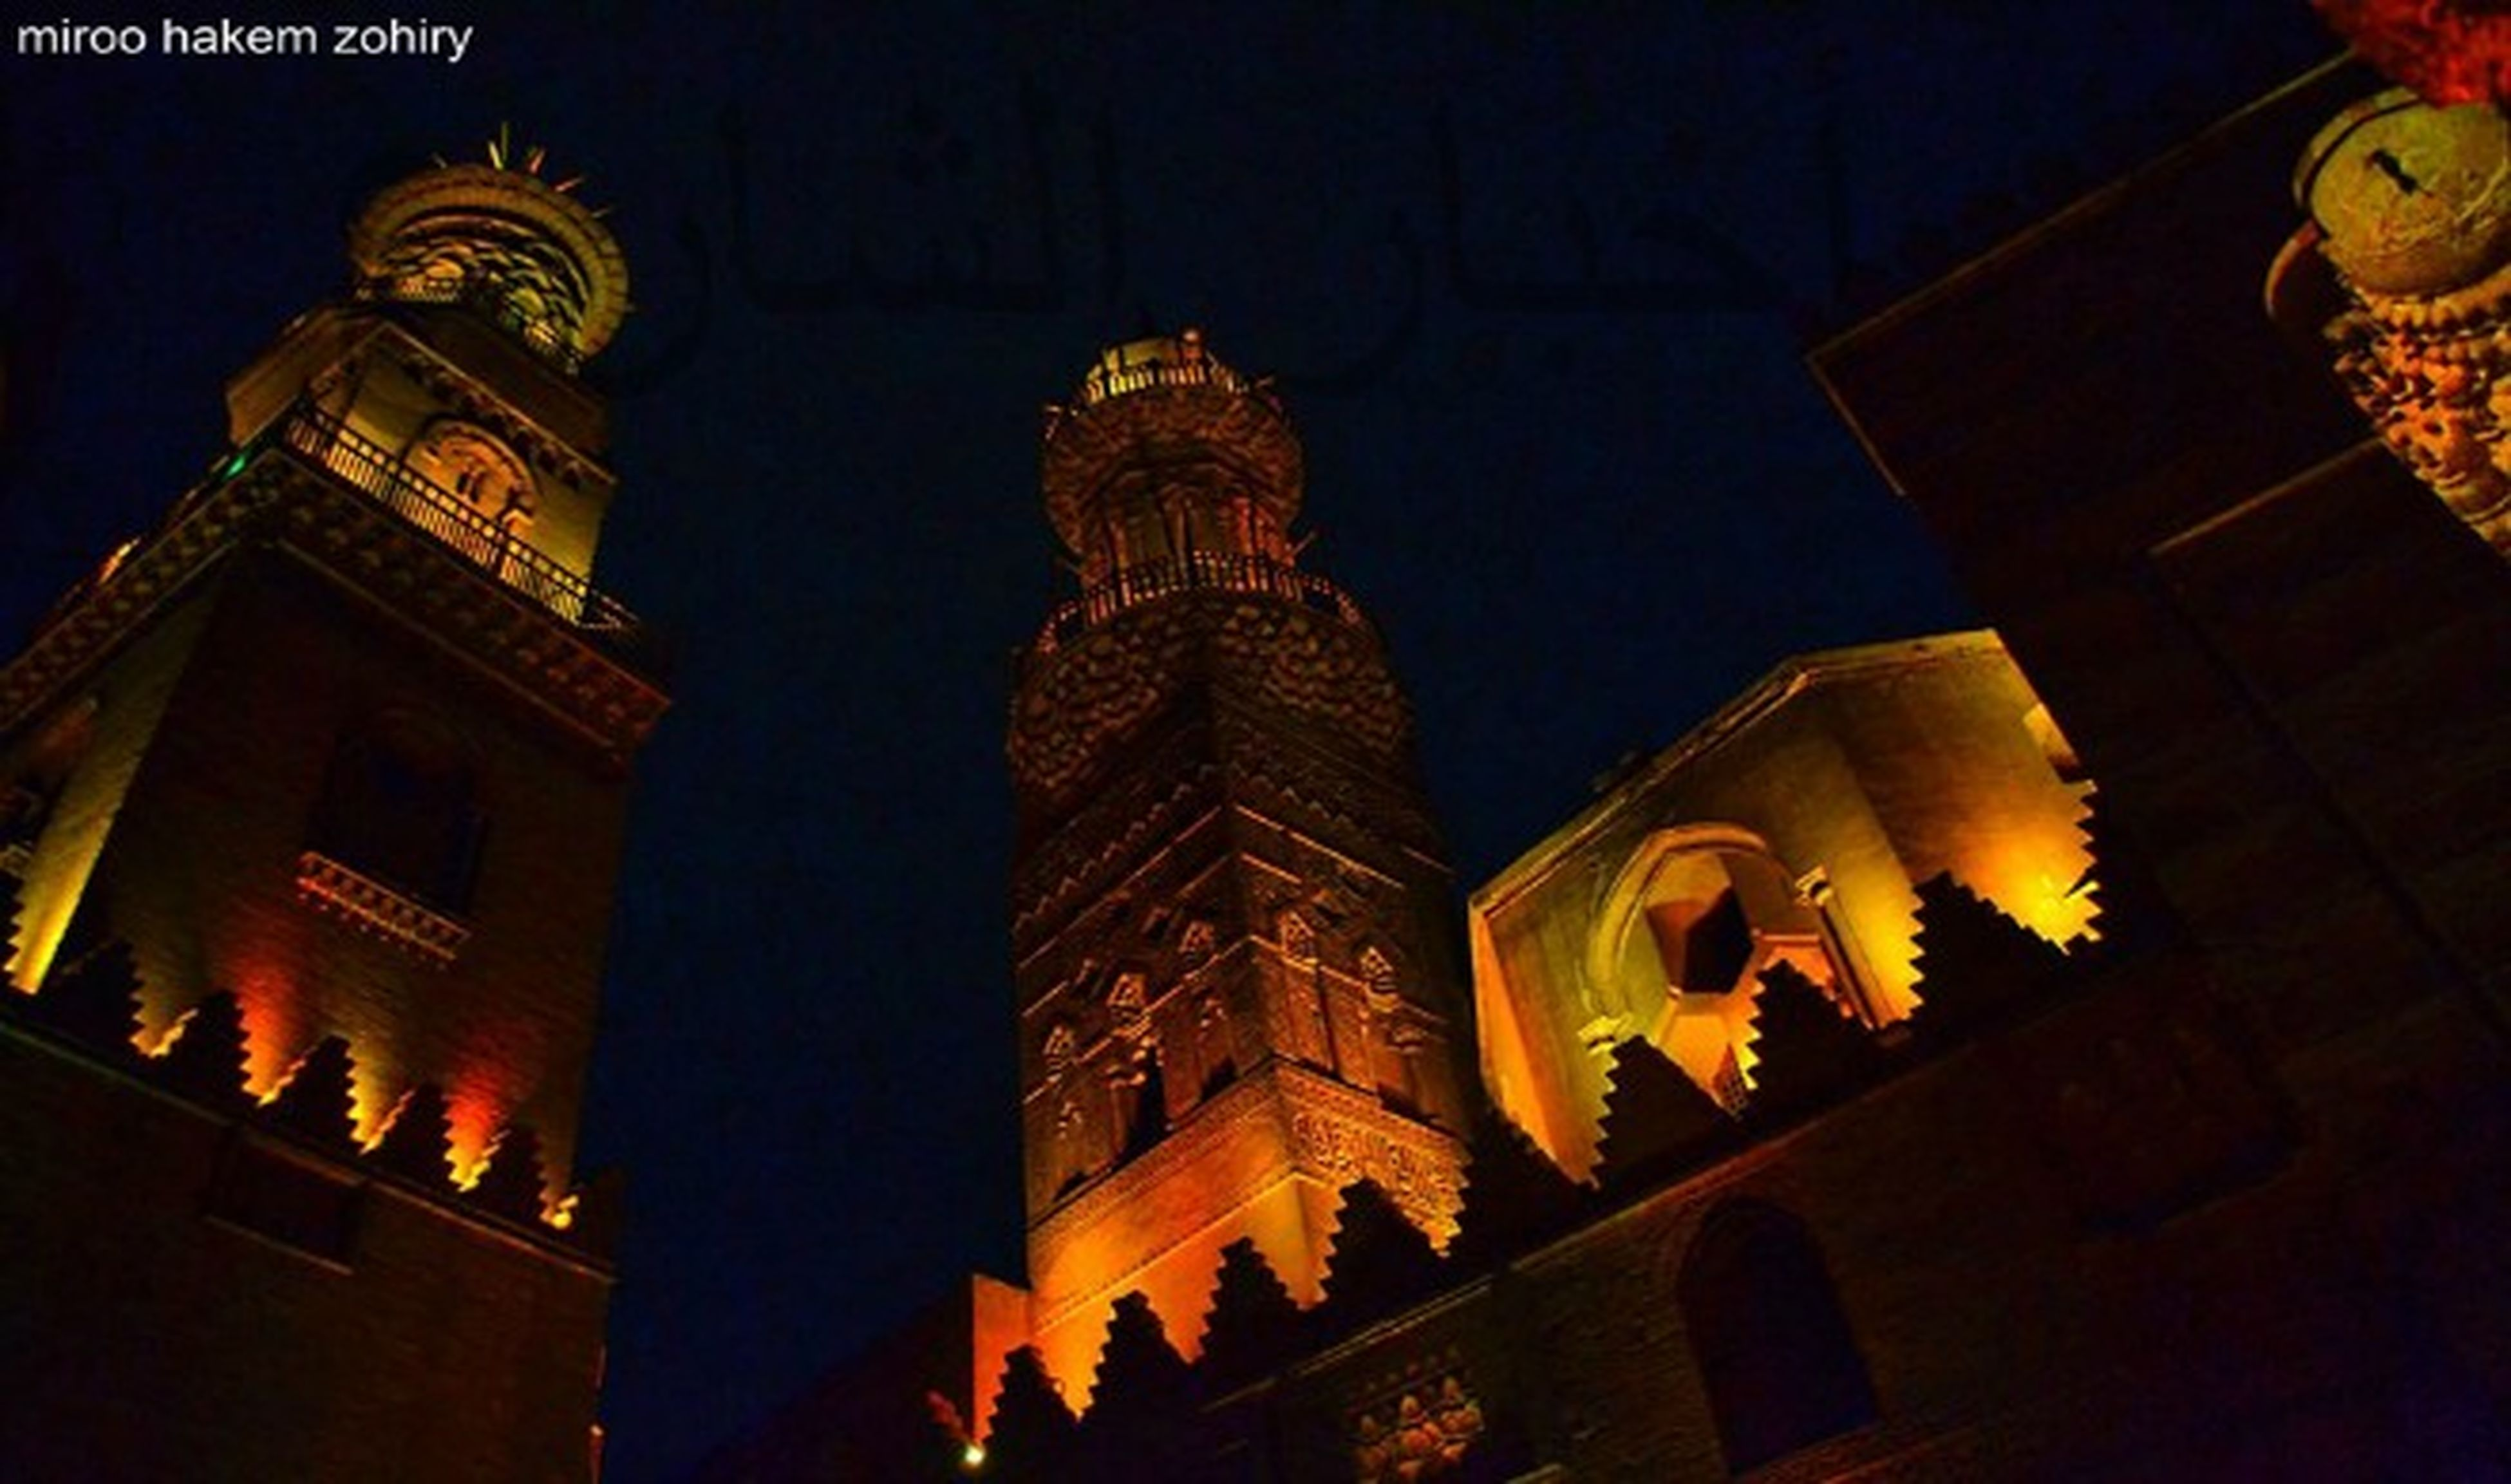 low angle view, architecture, building exterior, built structure, religion, place of worship, night, illuminated, spirituality, sky, famous place, history, travel destinations, church, outdoors, no people, city, capital cities